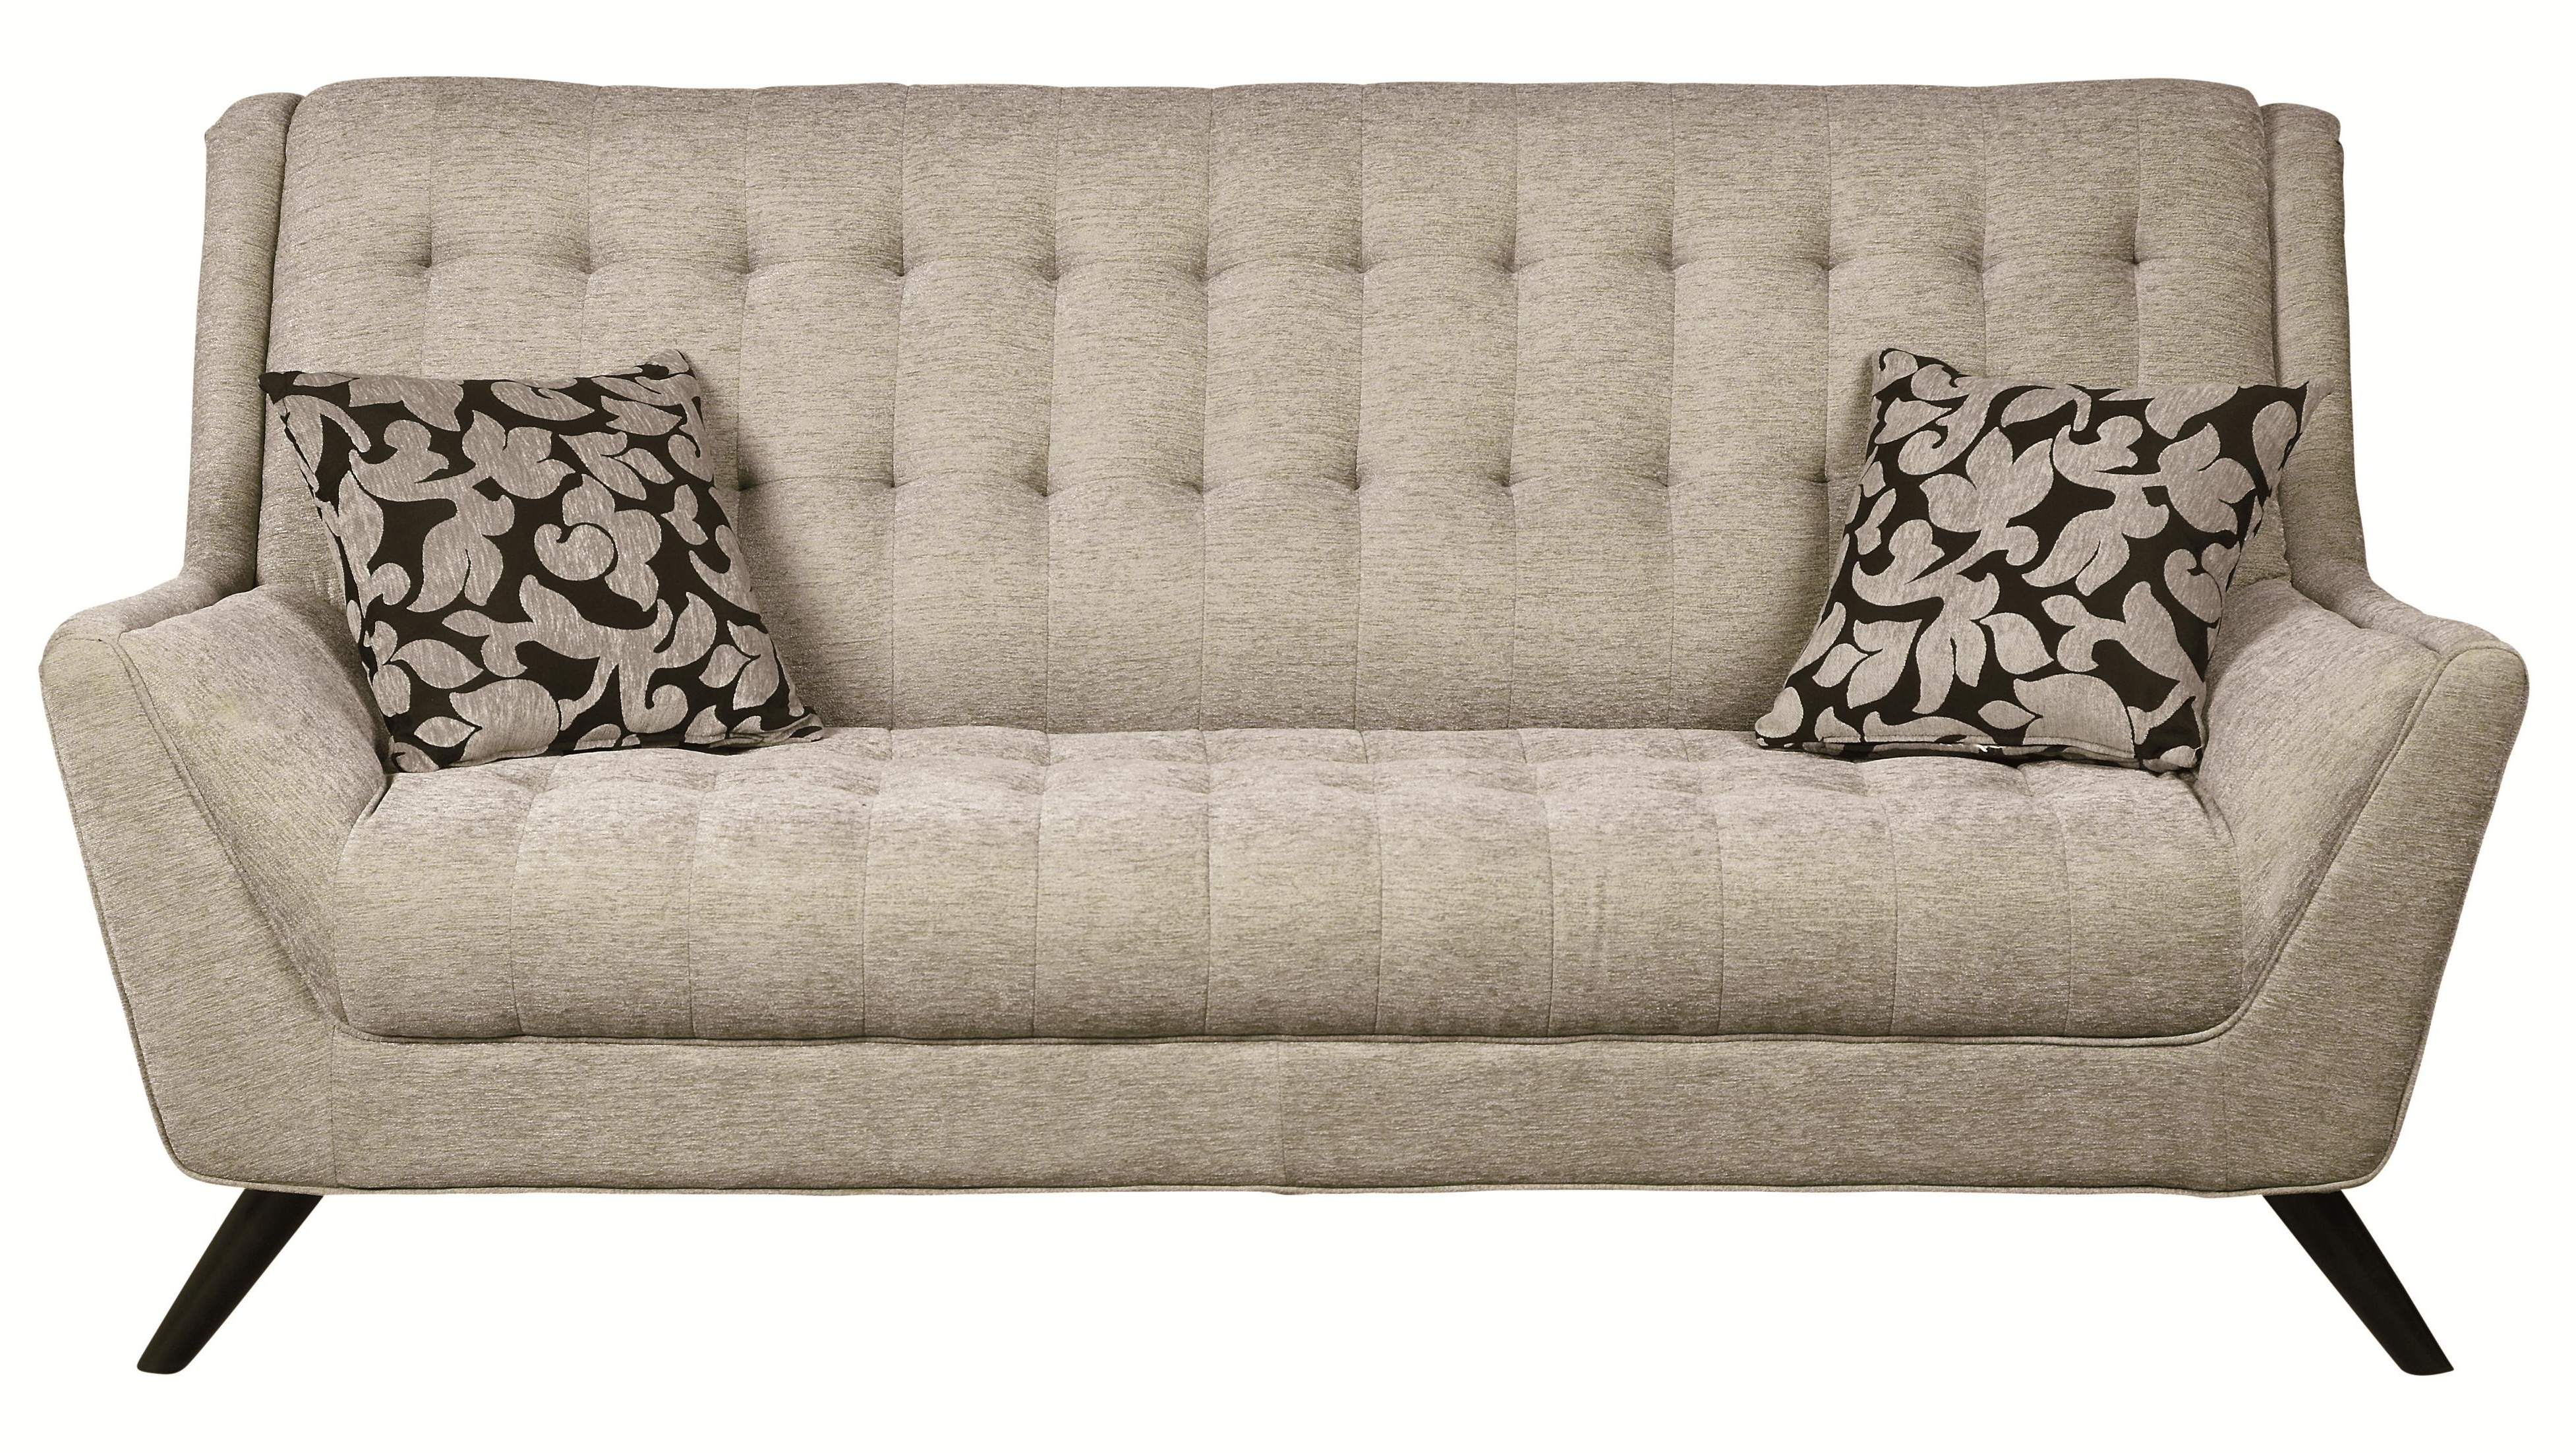 Dunk & Bright Intended For Retro Sofas (View 2 of 15)